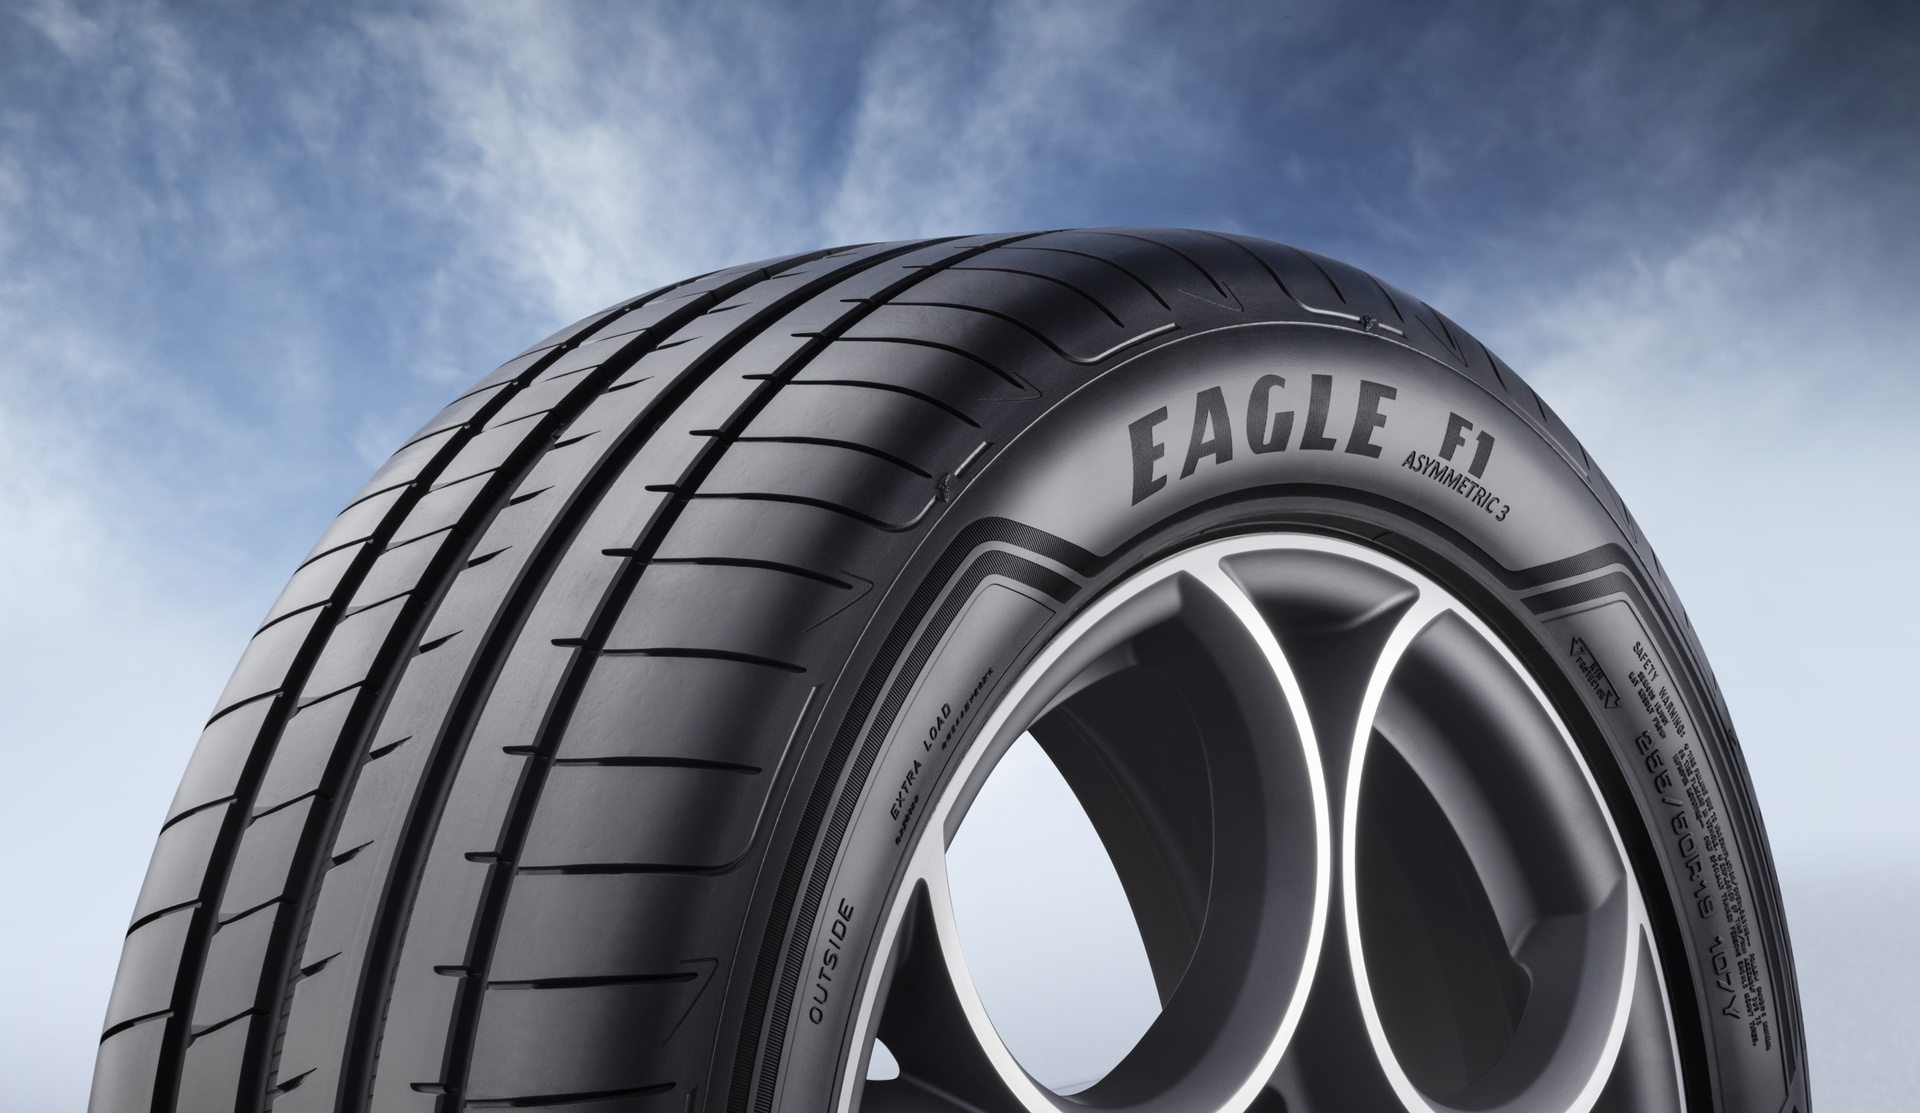 Eagle F1 Asymmetric 3 SUV - Beauty shots (2)